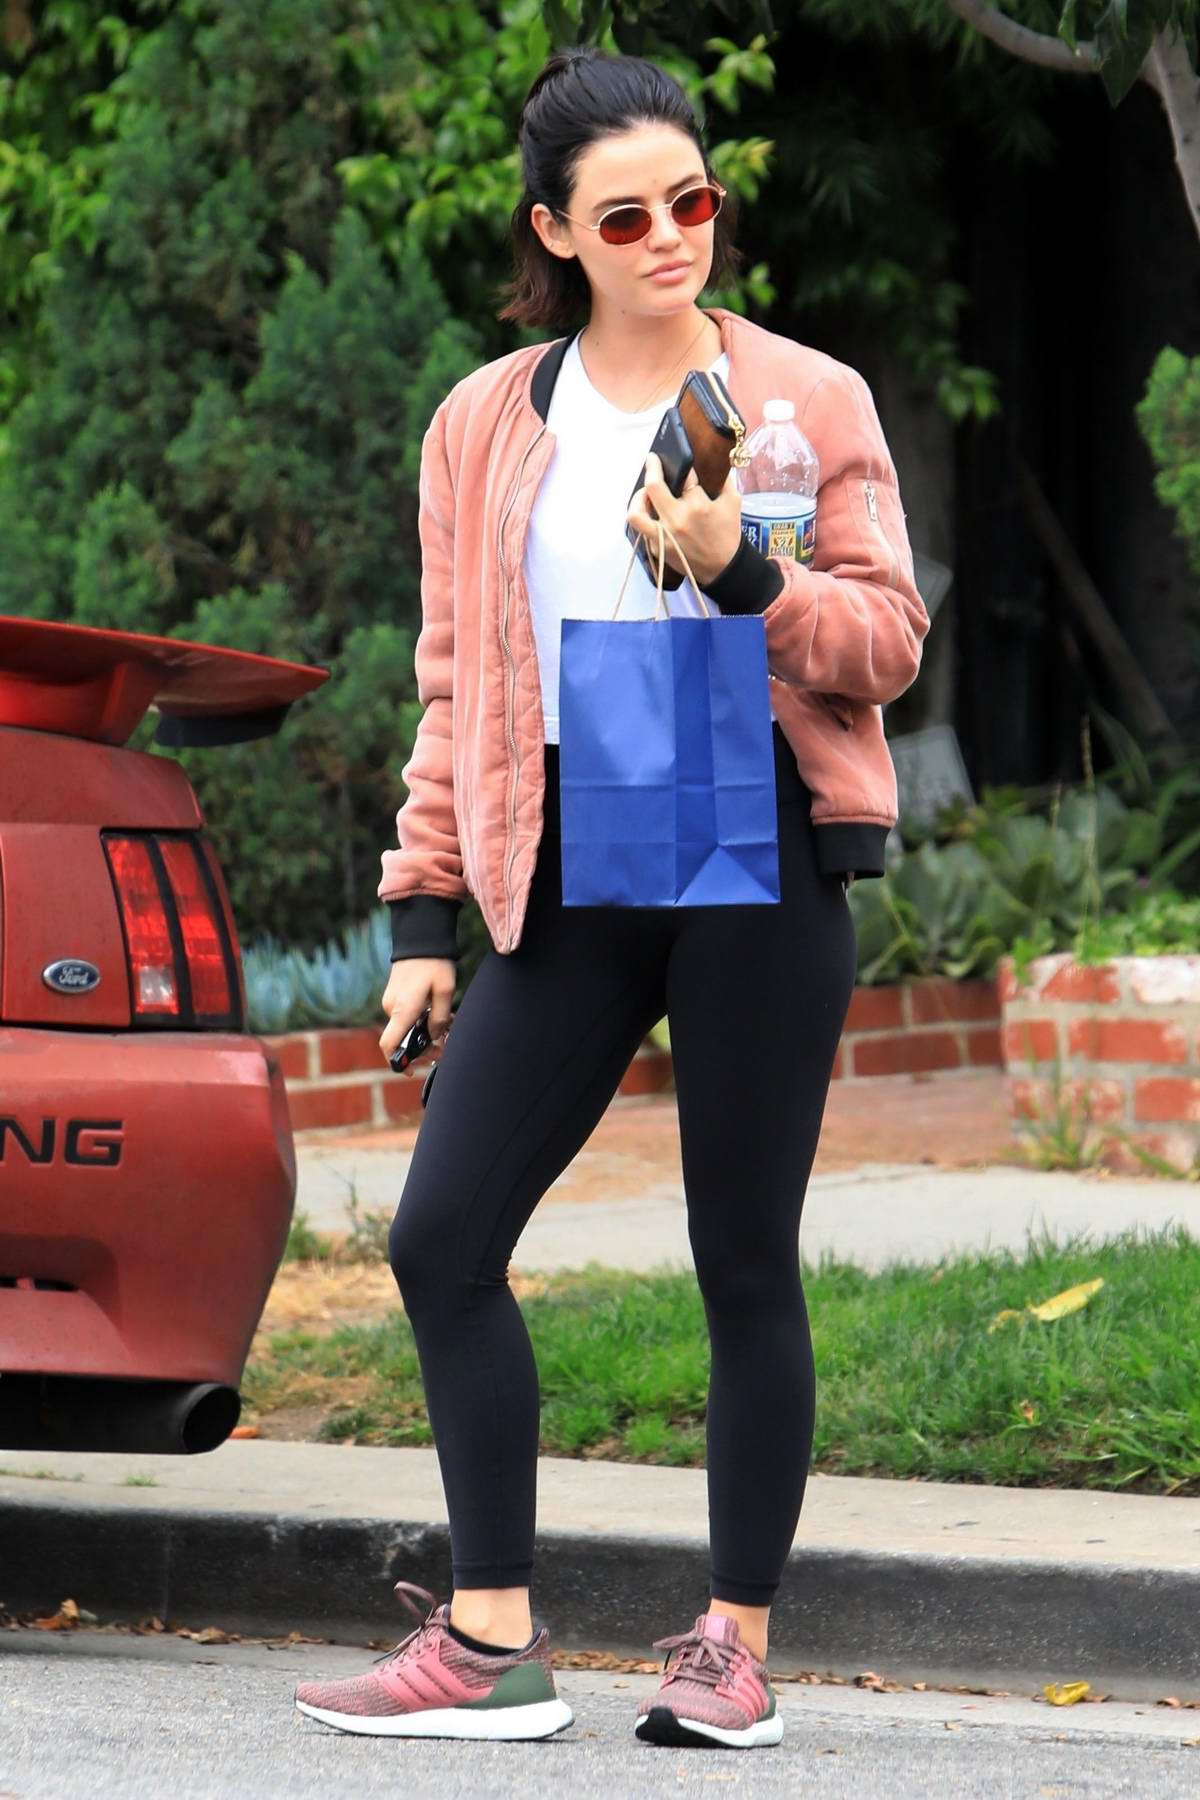 Lucy Hale gets a parking ticket while at Le Jolie Medi Spa in West Hollywood, Los Angeles